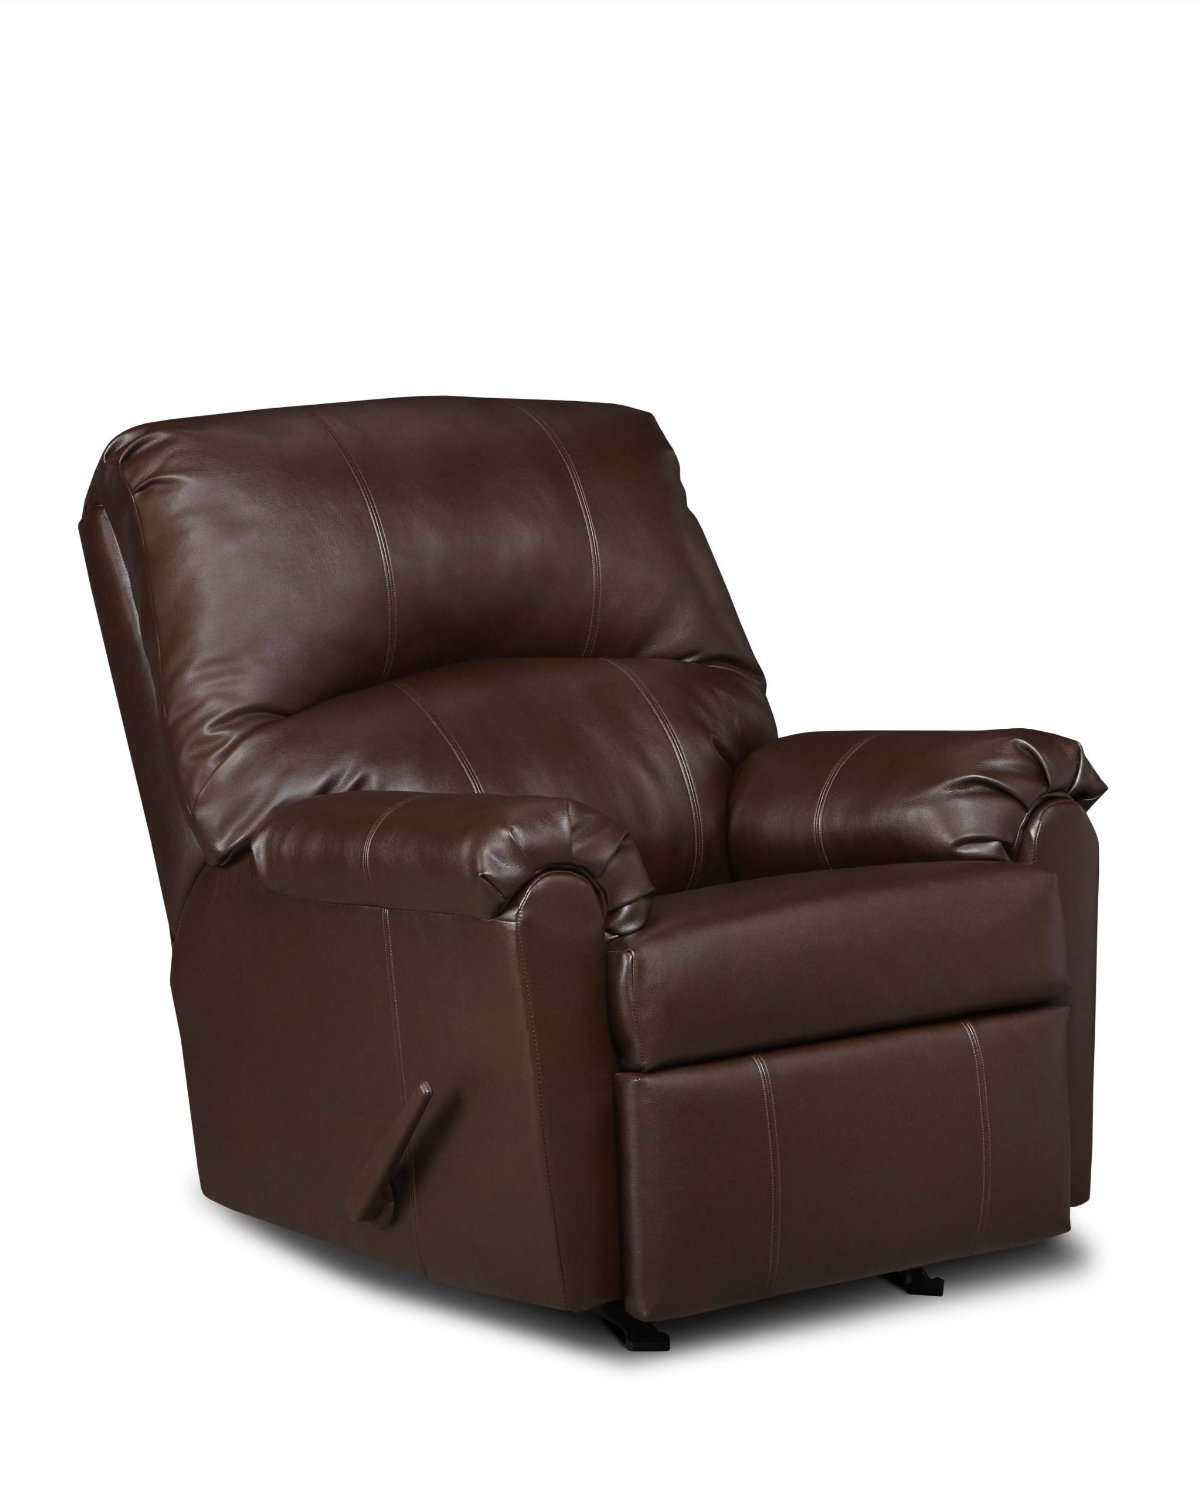 Wall Hugger Recliners Small Spaces Hom Decor